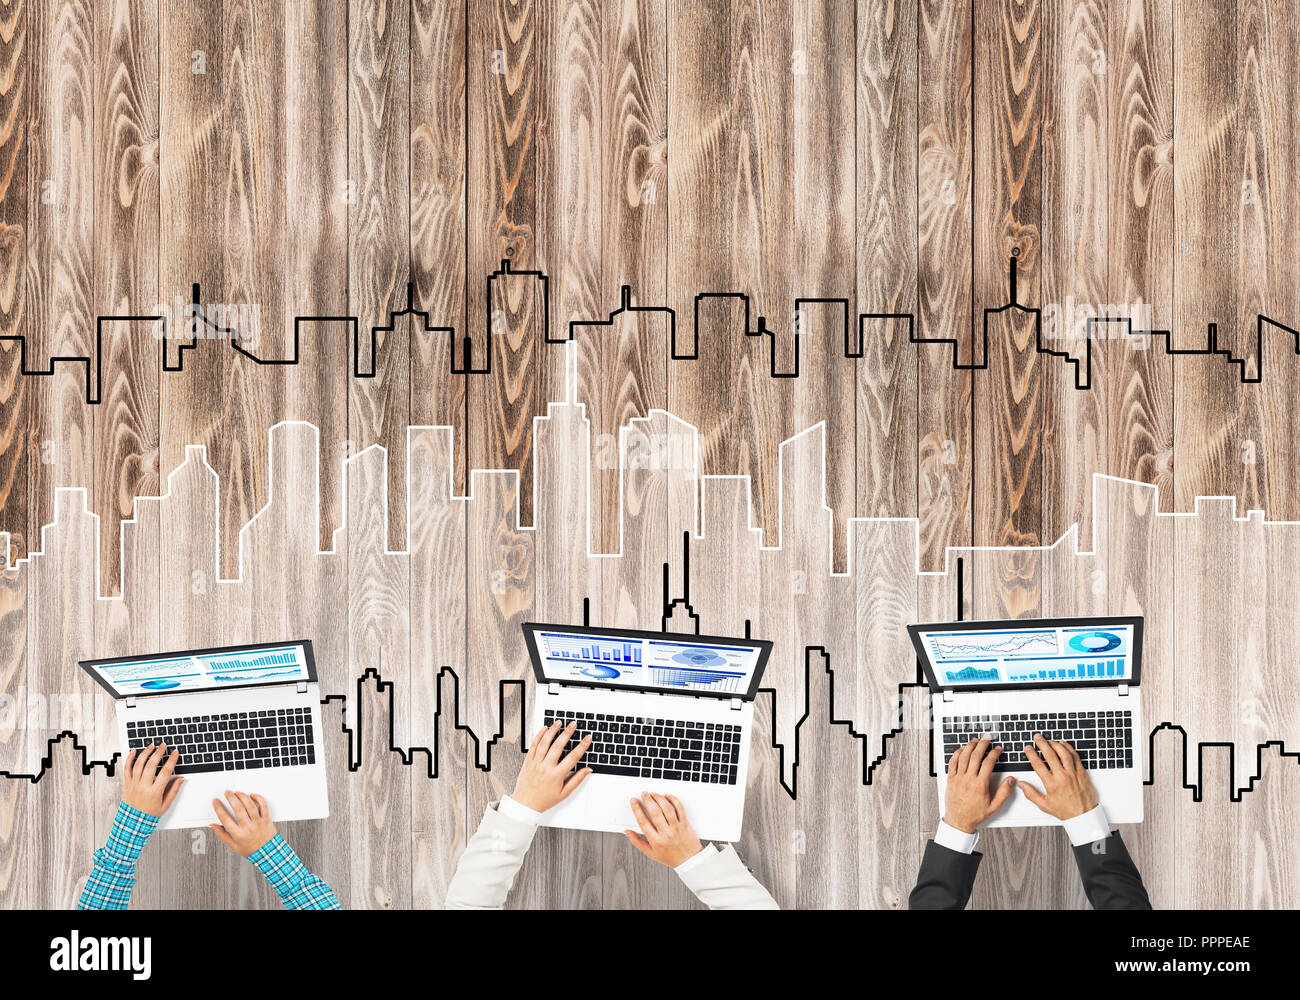 Top view of businesspeople sitting at table and using gadgets - Stock Image